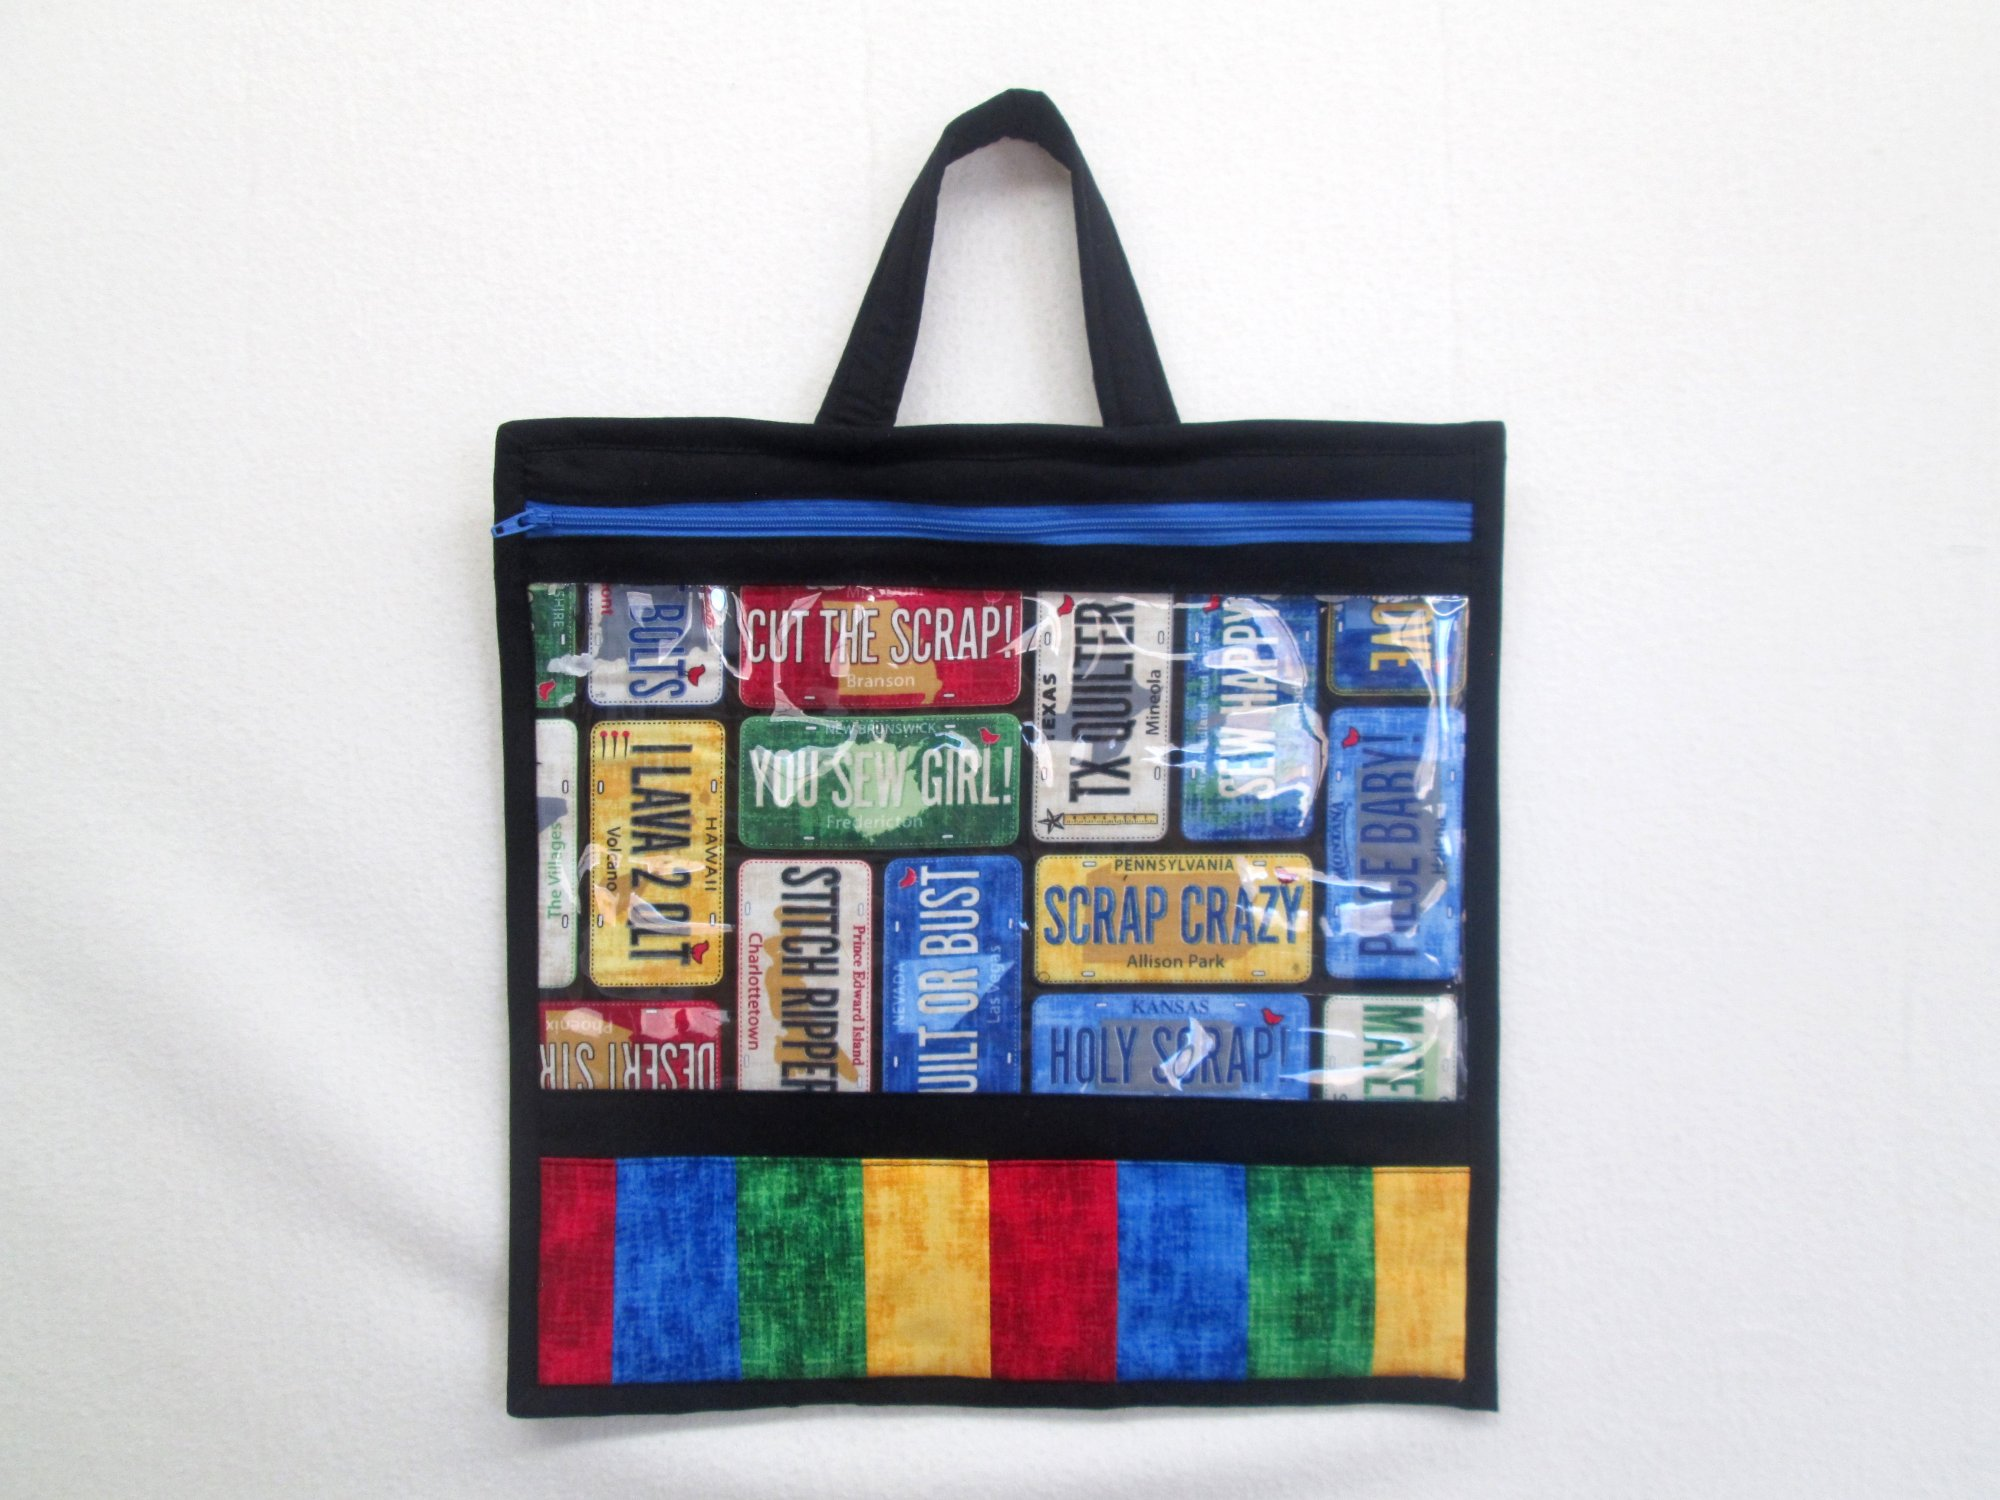 2016 Row by Row License Plate Large Project Bag Sample 13x13 Includes Vinyl & Zipper